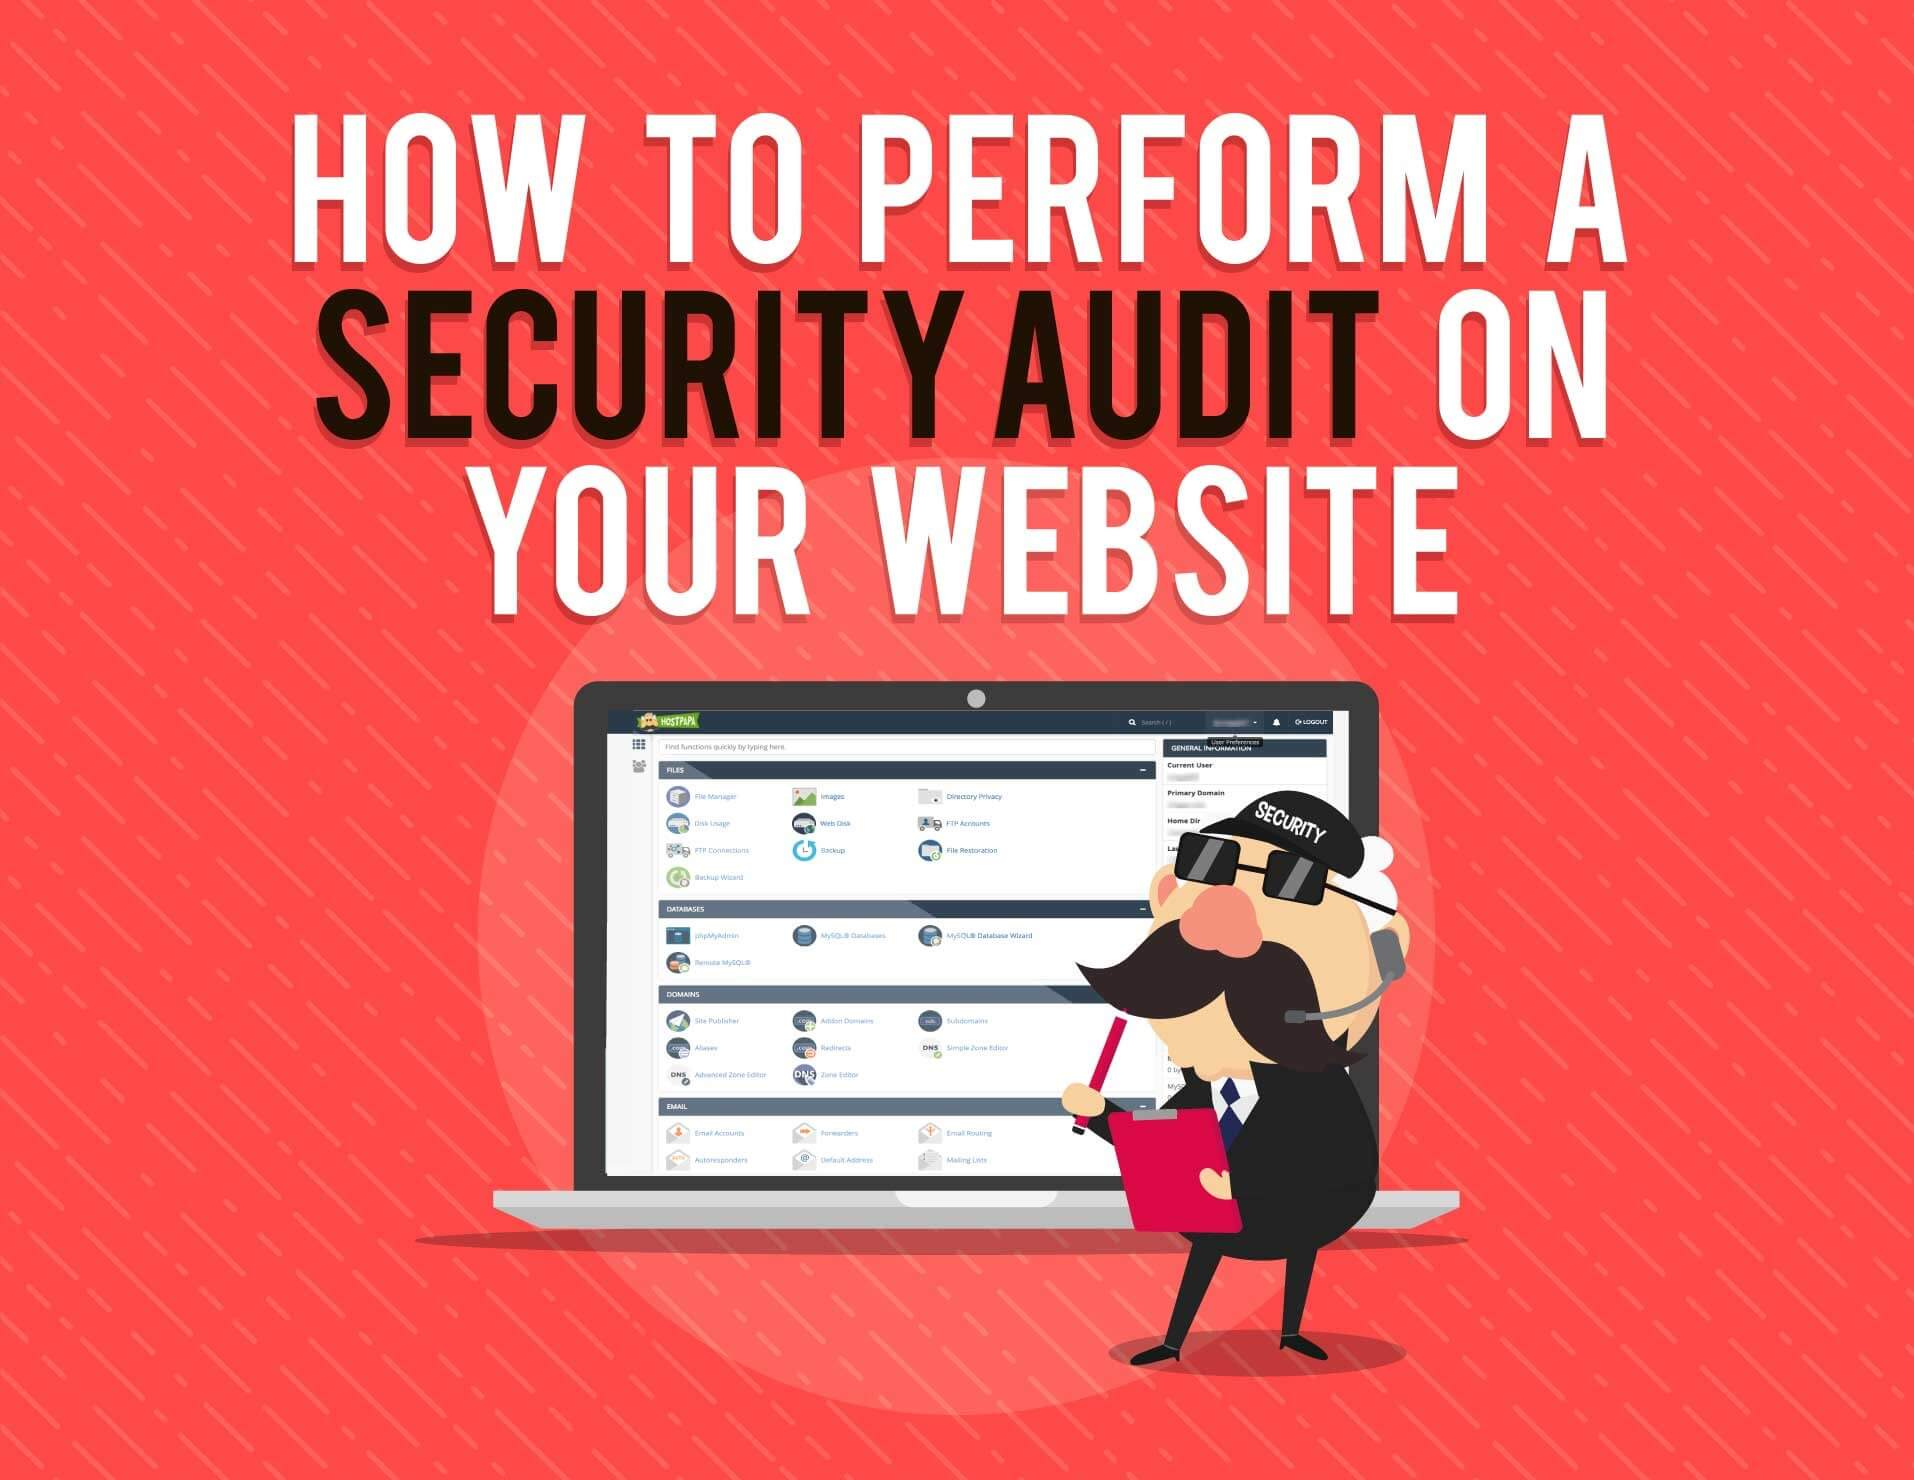 Header for the infographic about performing website security audit